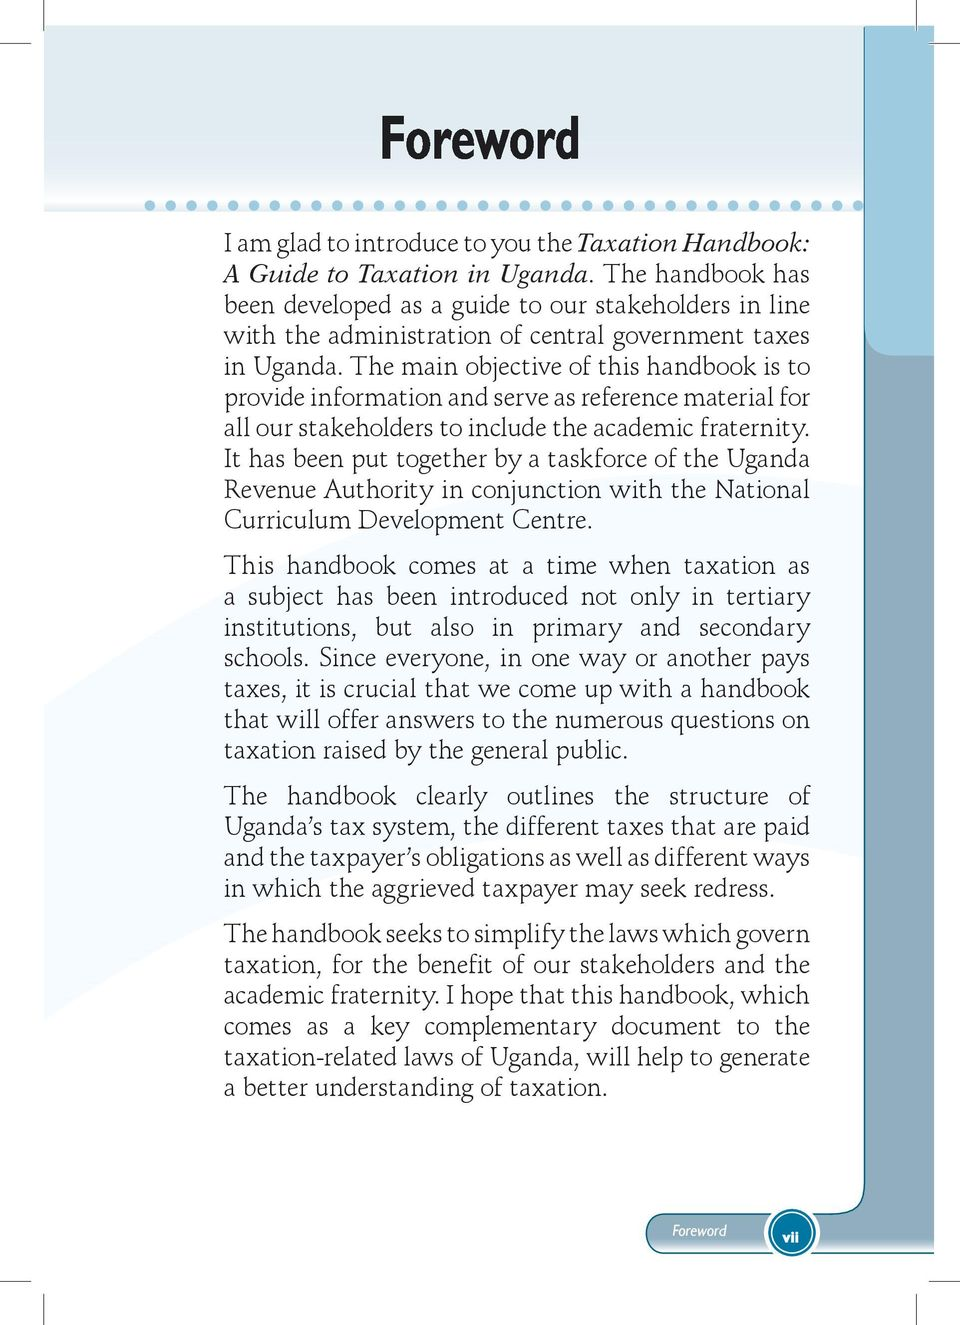 The main objective of this handbook is to provide information and serve as reference material for all our stakeholders to include the academic fraternity.